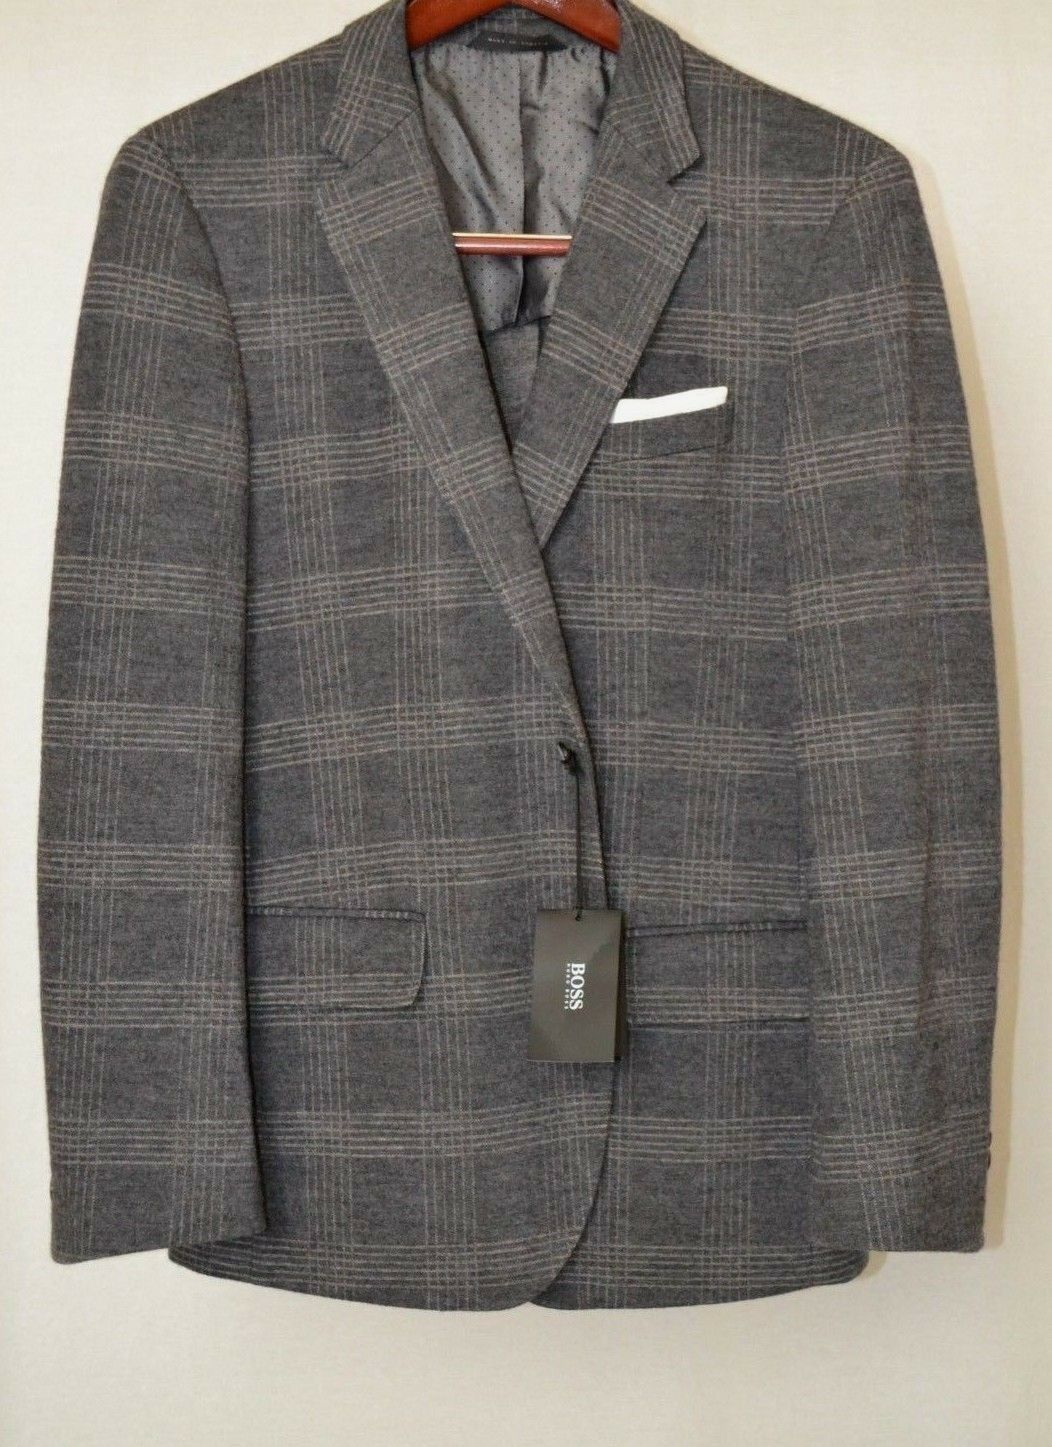 Hugo Boss Hadley4 Men's Flannel Med Grey Glen Plaid 40R Wool Cotton Sport Coat